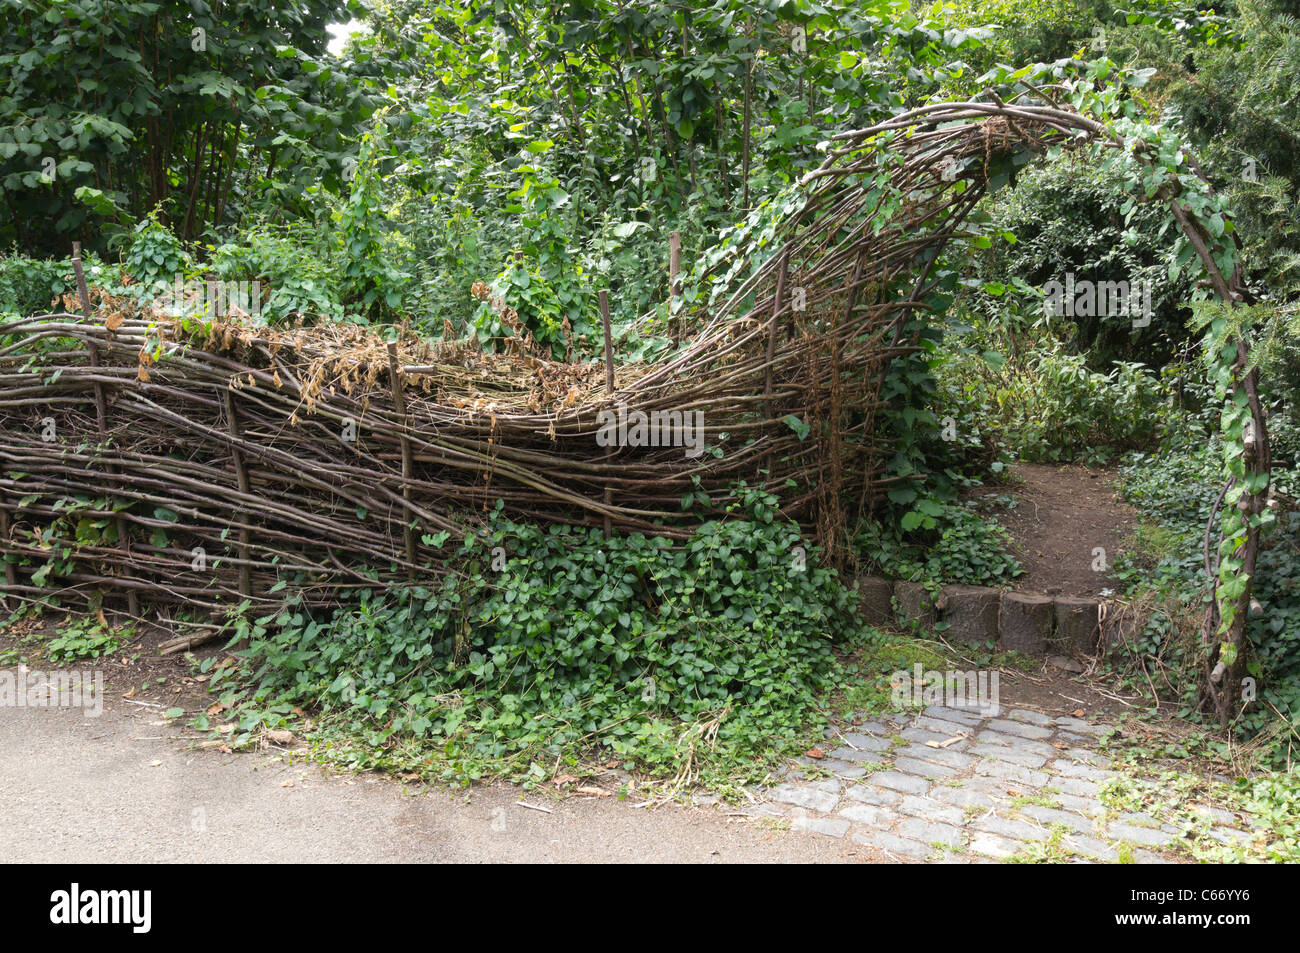 Willow Hedge Natural Garden Fence Stock Photos Willow Hedge